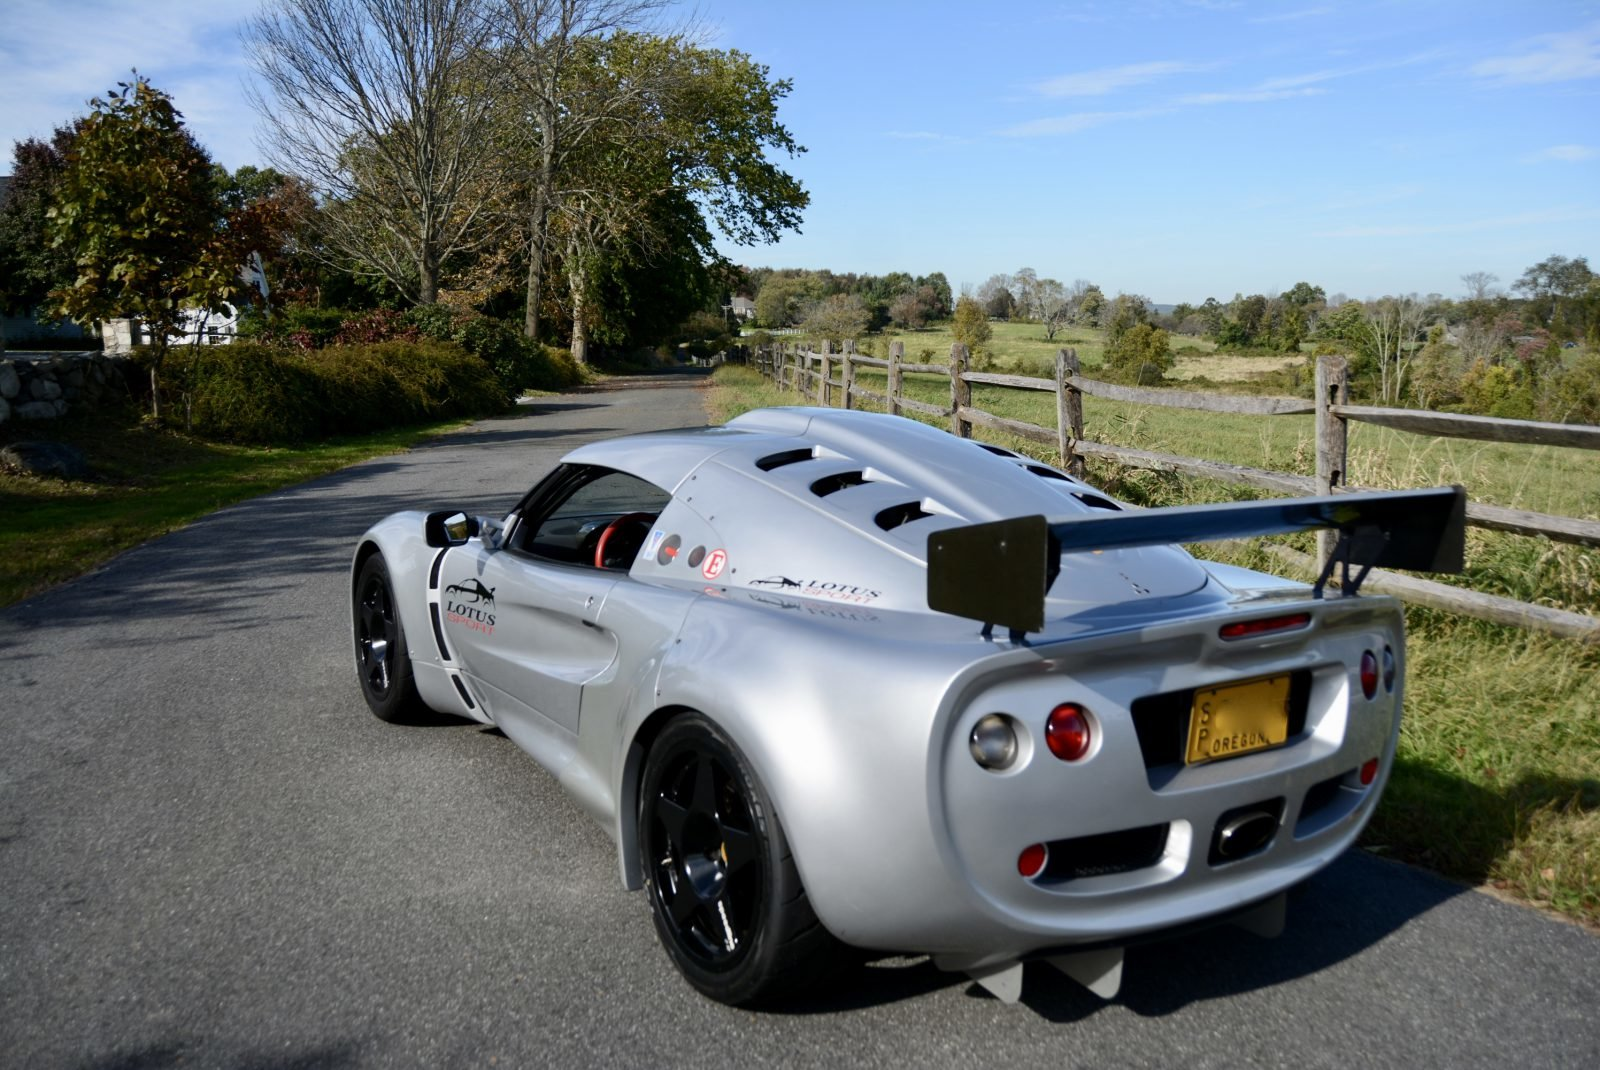 2000 Lotus Motorsport Elise Coupe Rare 1 of 12 Racer  $obo For Sale (picture 6 of 6)